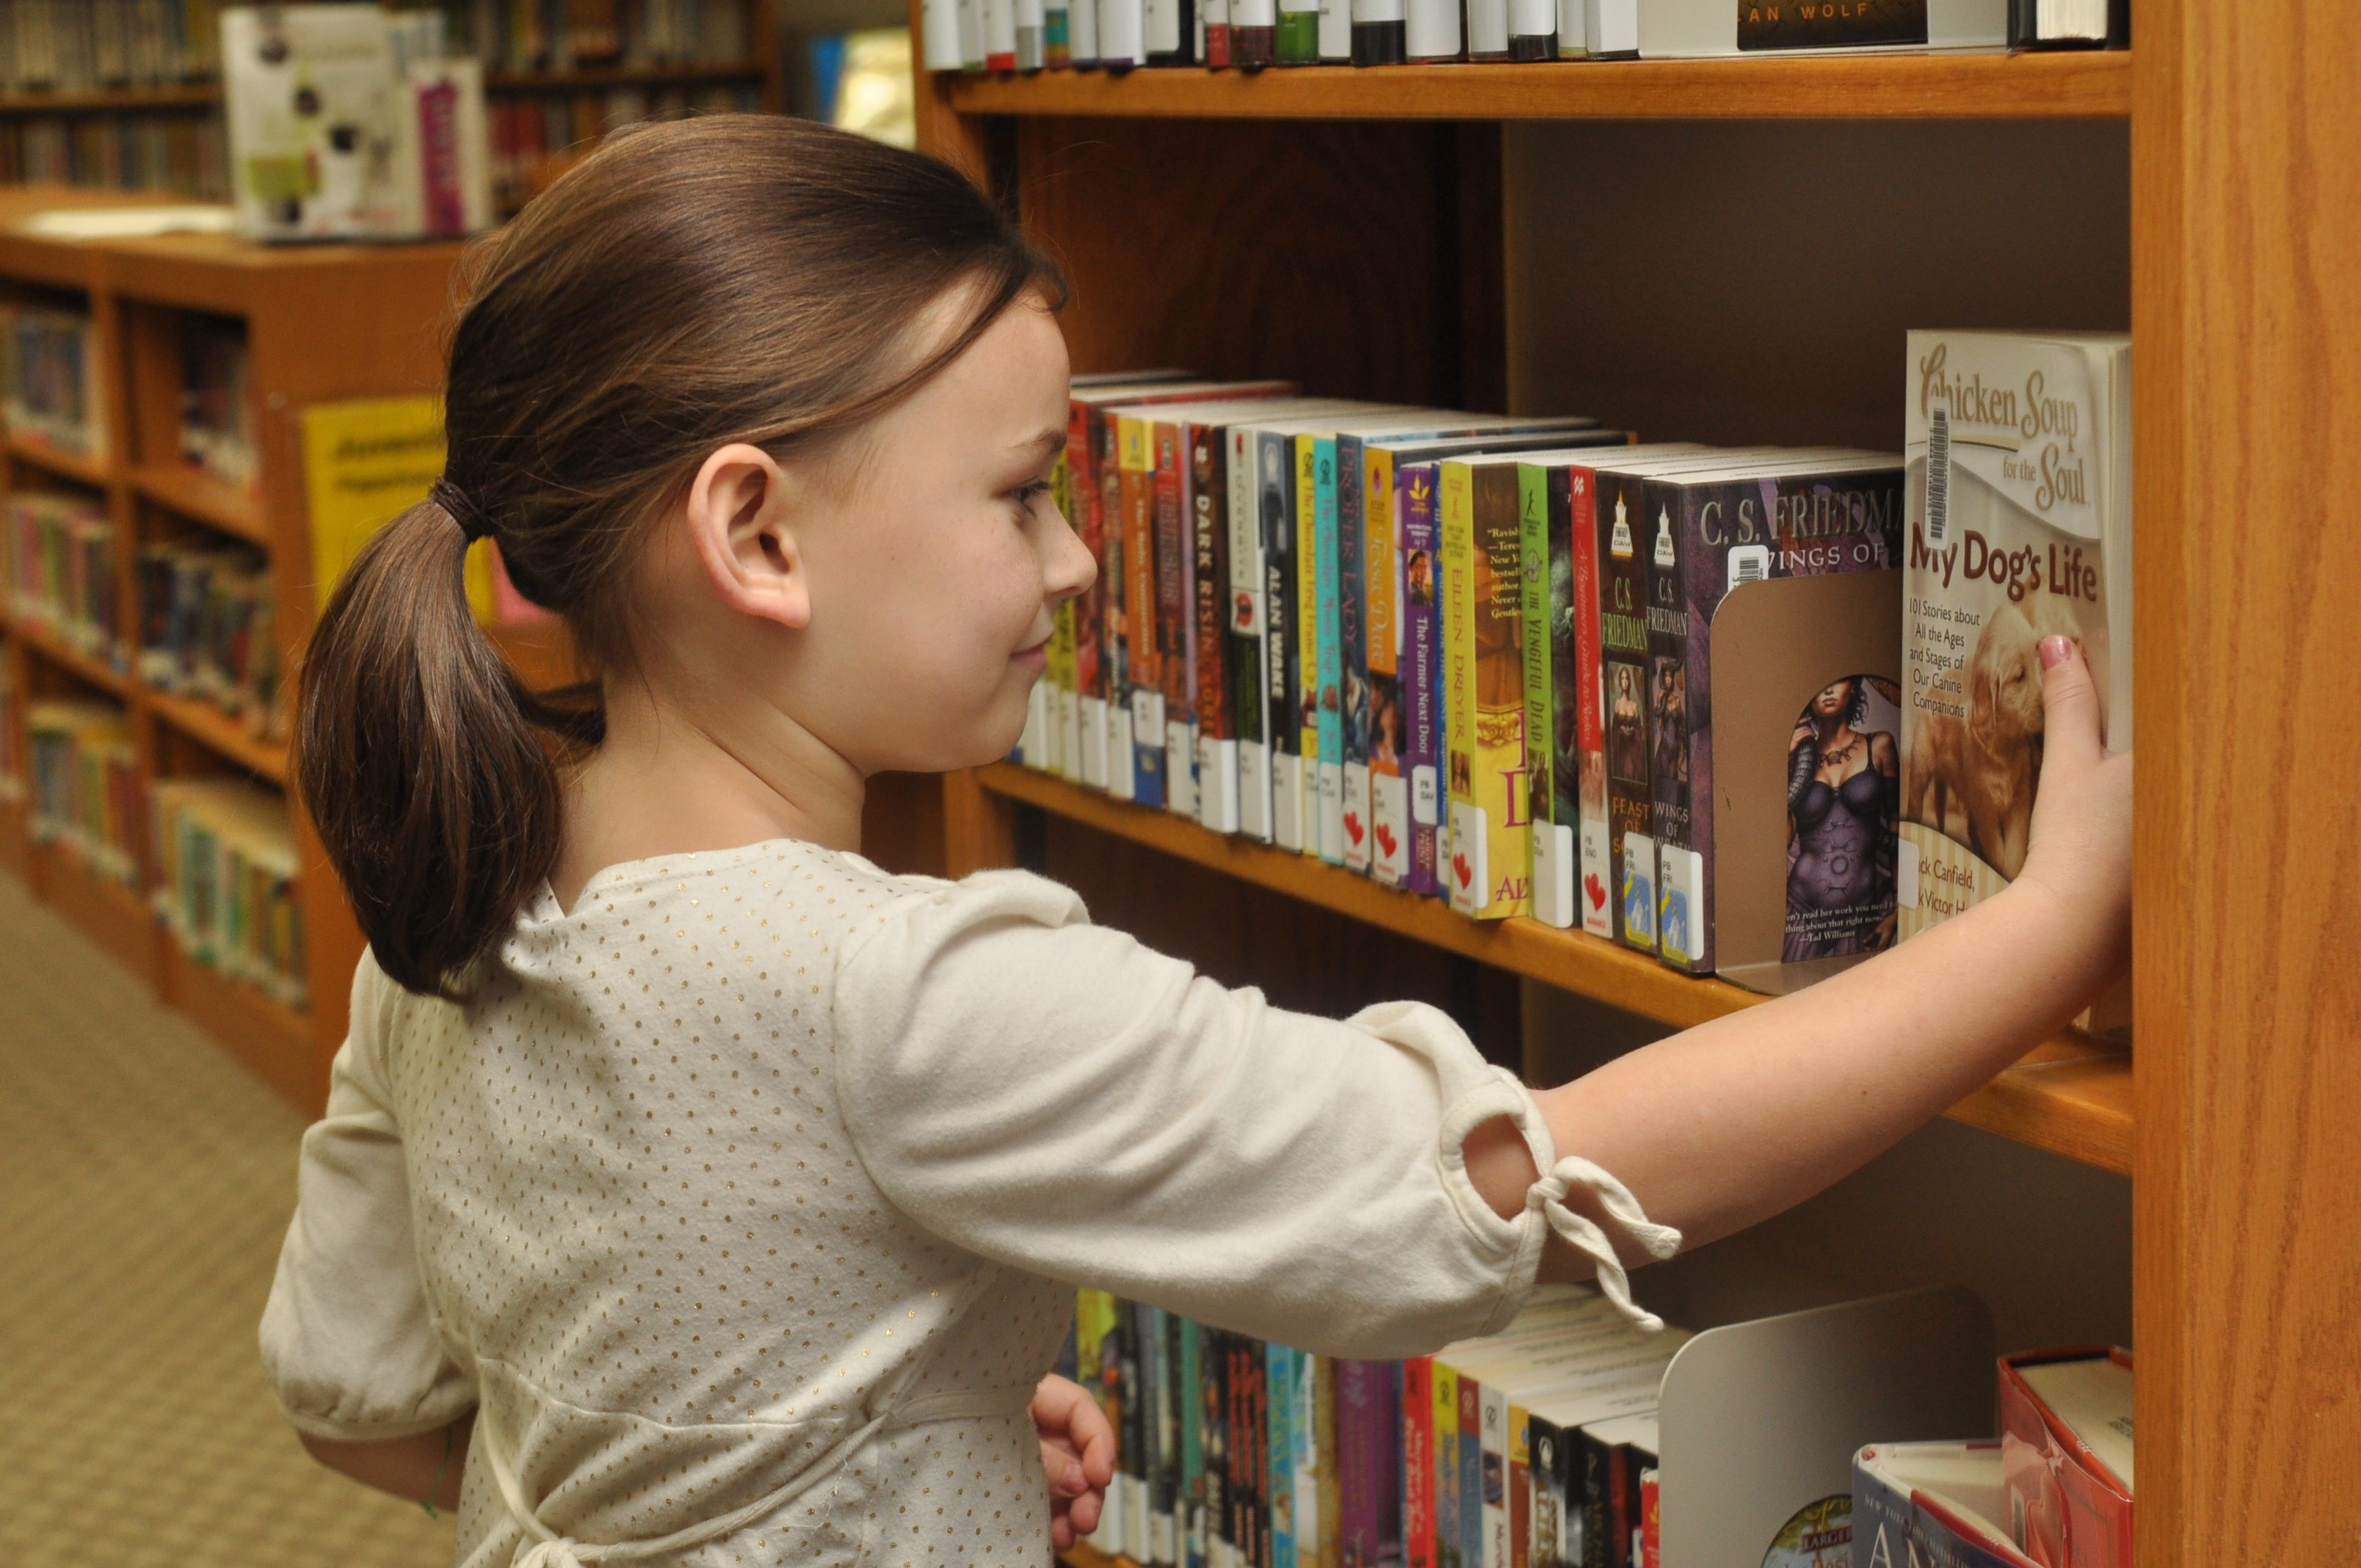 Young girl looking at books on a library bookshelf